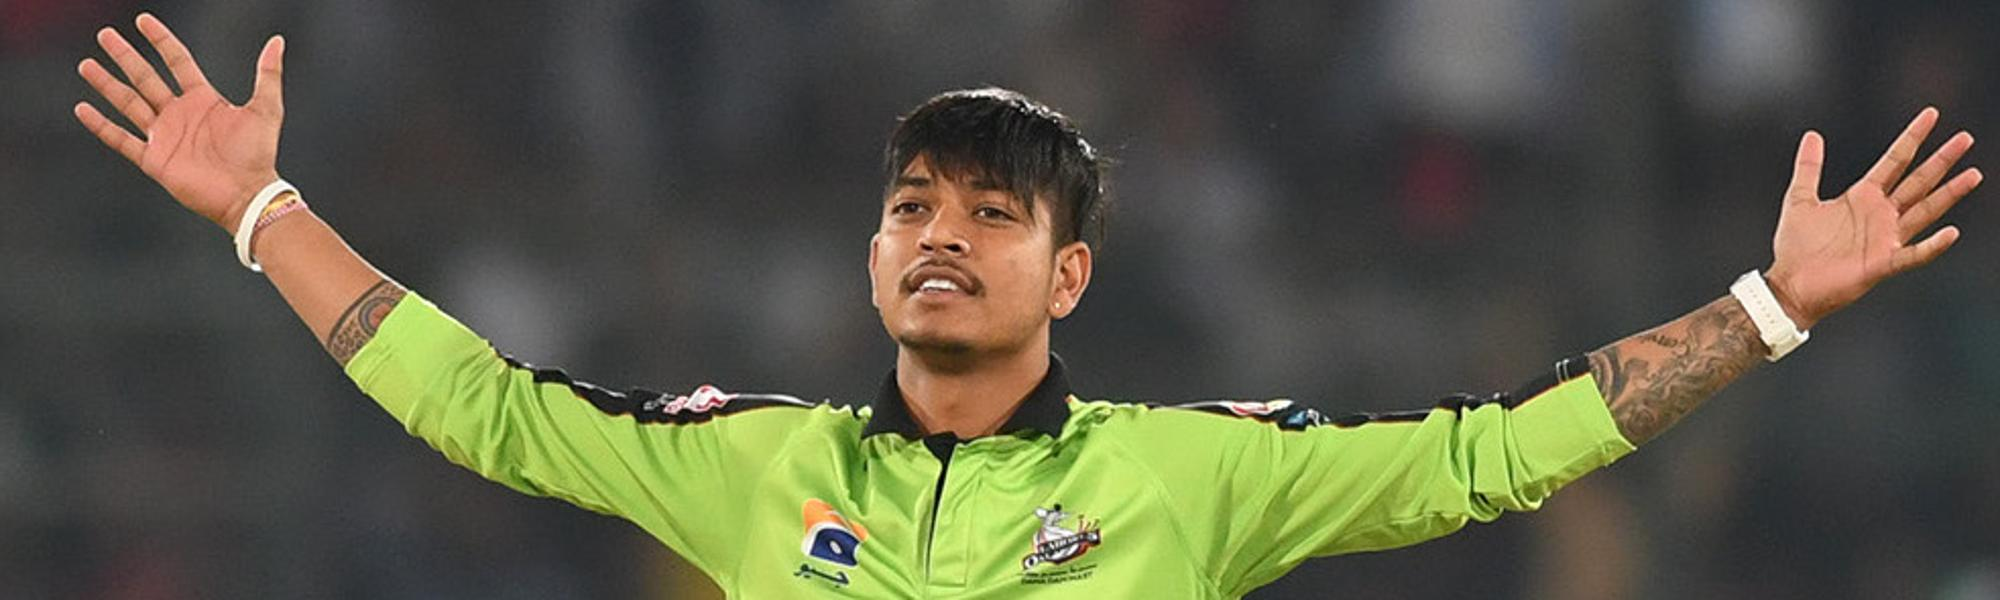 Sandeep Lamichhane reflects on 'lifetime experience' in Pakistan